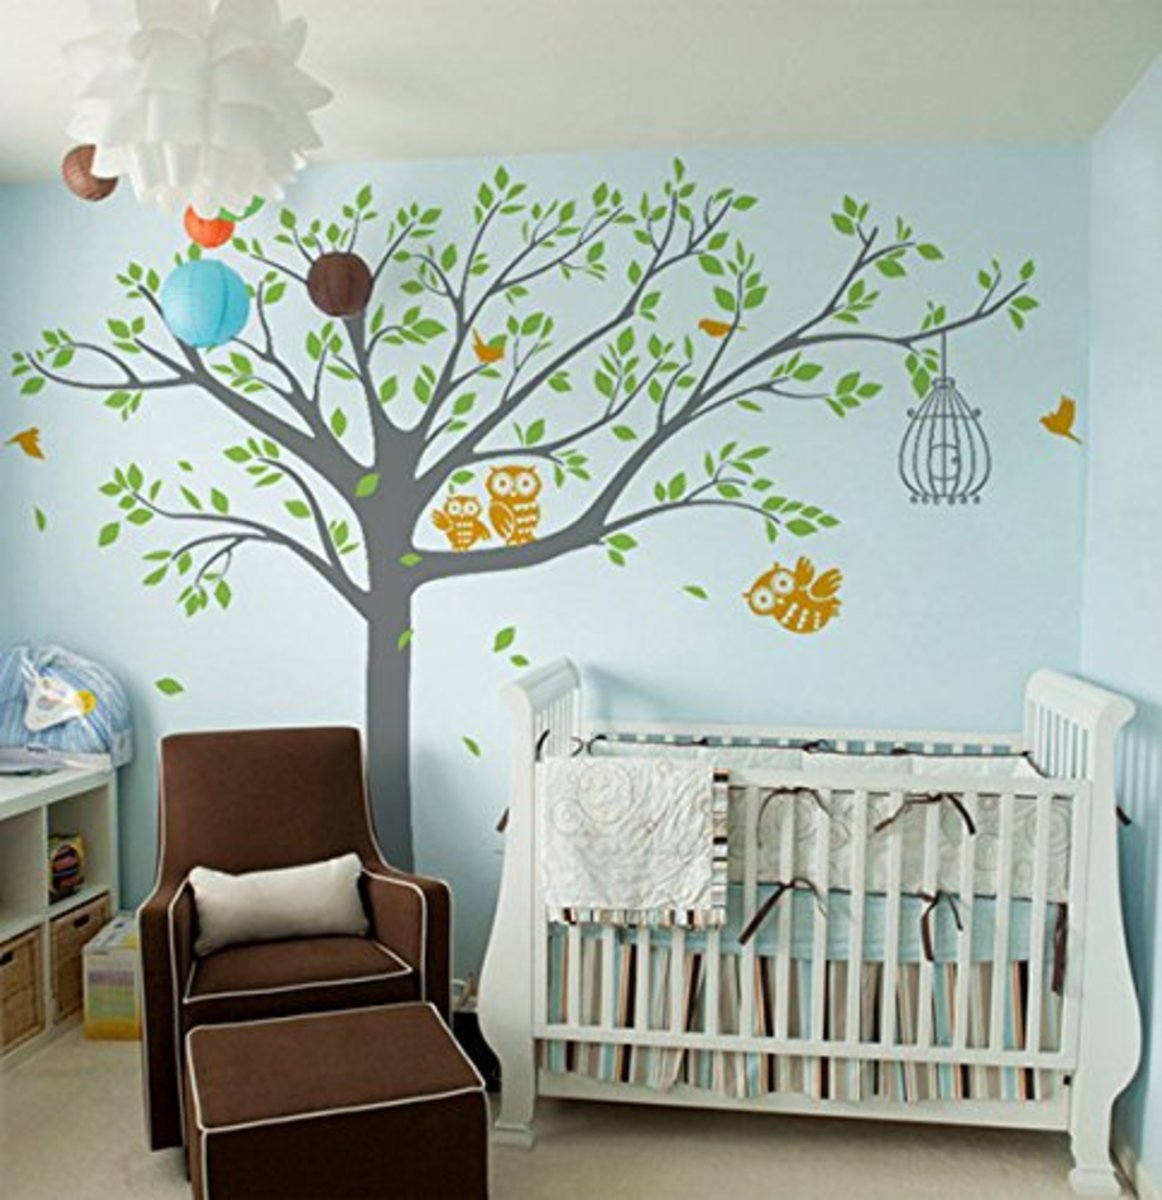 Removable Wall Decals Mural for Nursery Room